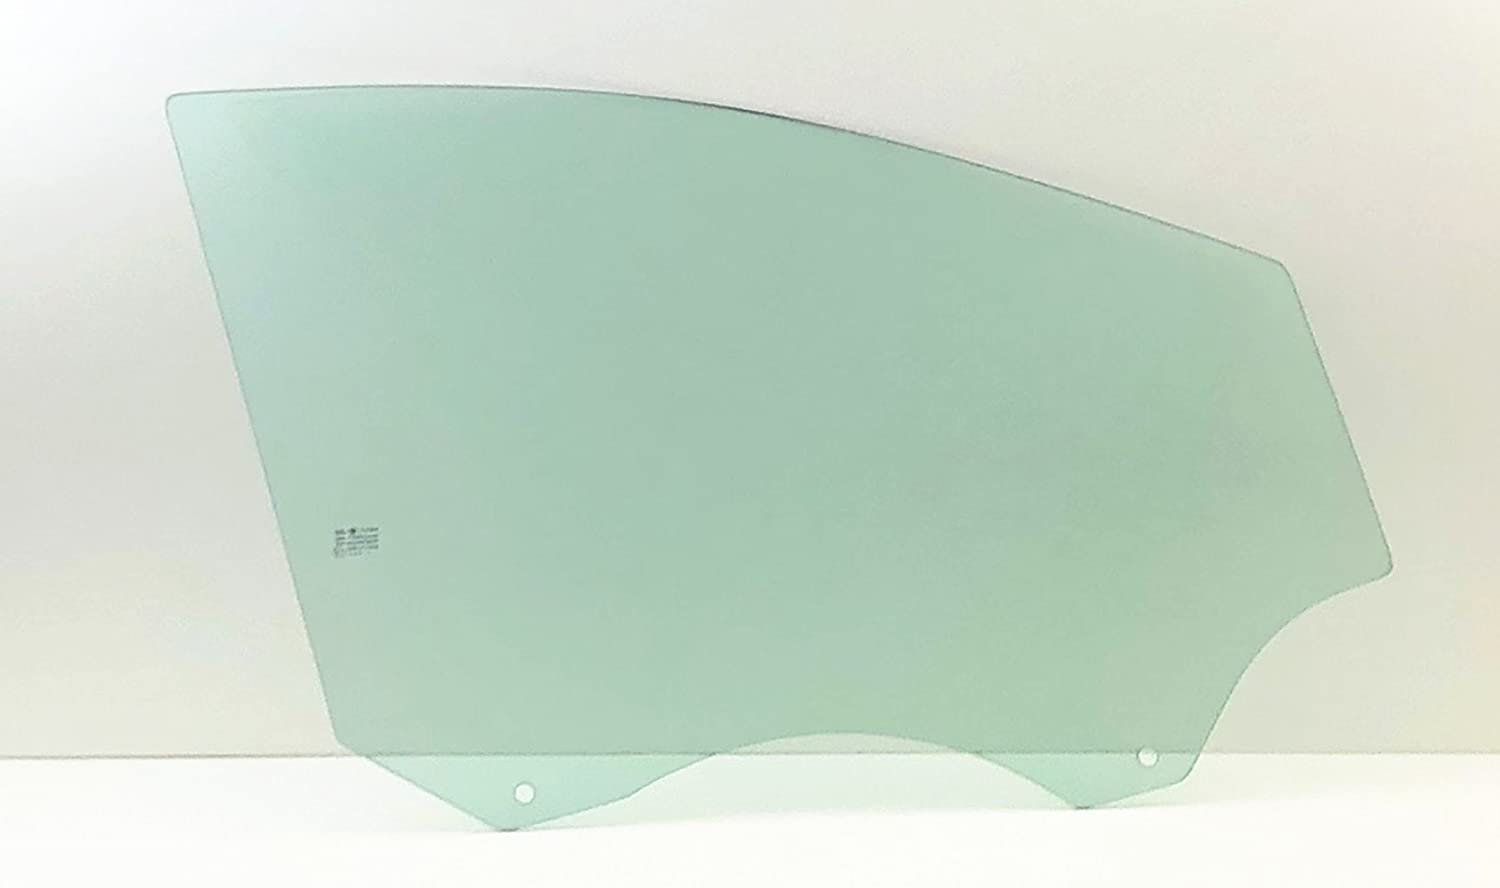 NAGD Fits 2013-2018 Ford Escape 4 Door SUV Passenger Side Right Front Door Window Glass